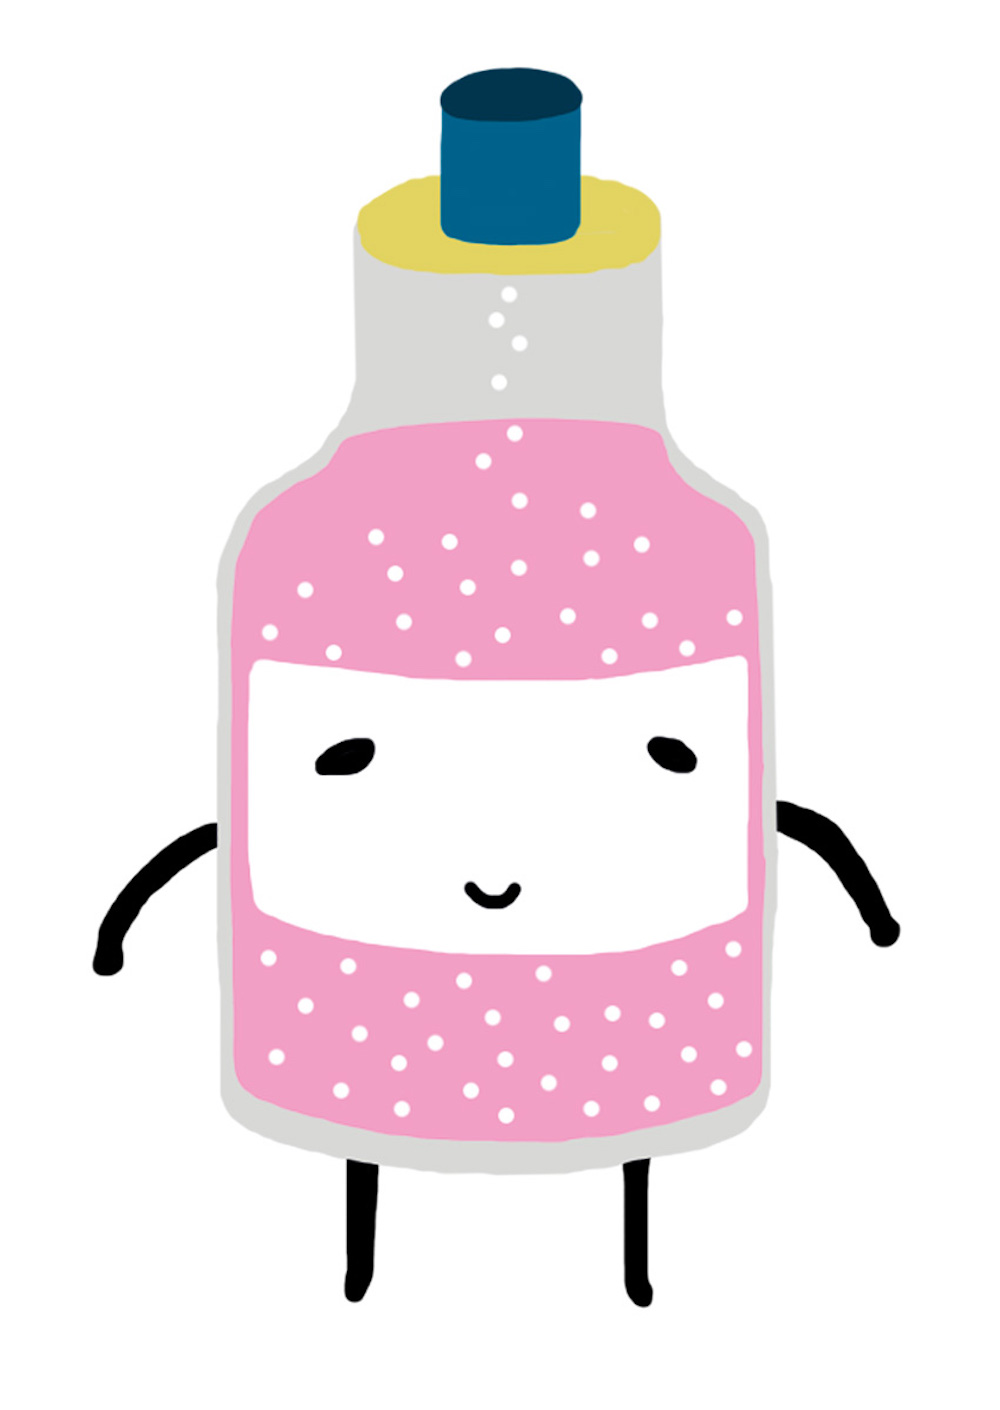 illustration, illustrations, illustrator, illustrators, smile, smiling, bottle, pink, bubble, bubbles, bottles, happy